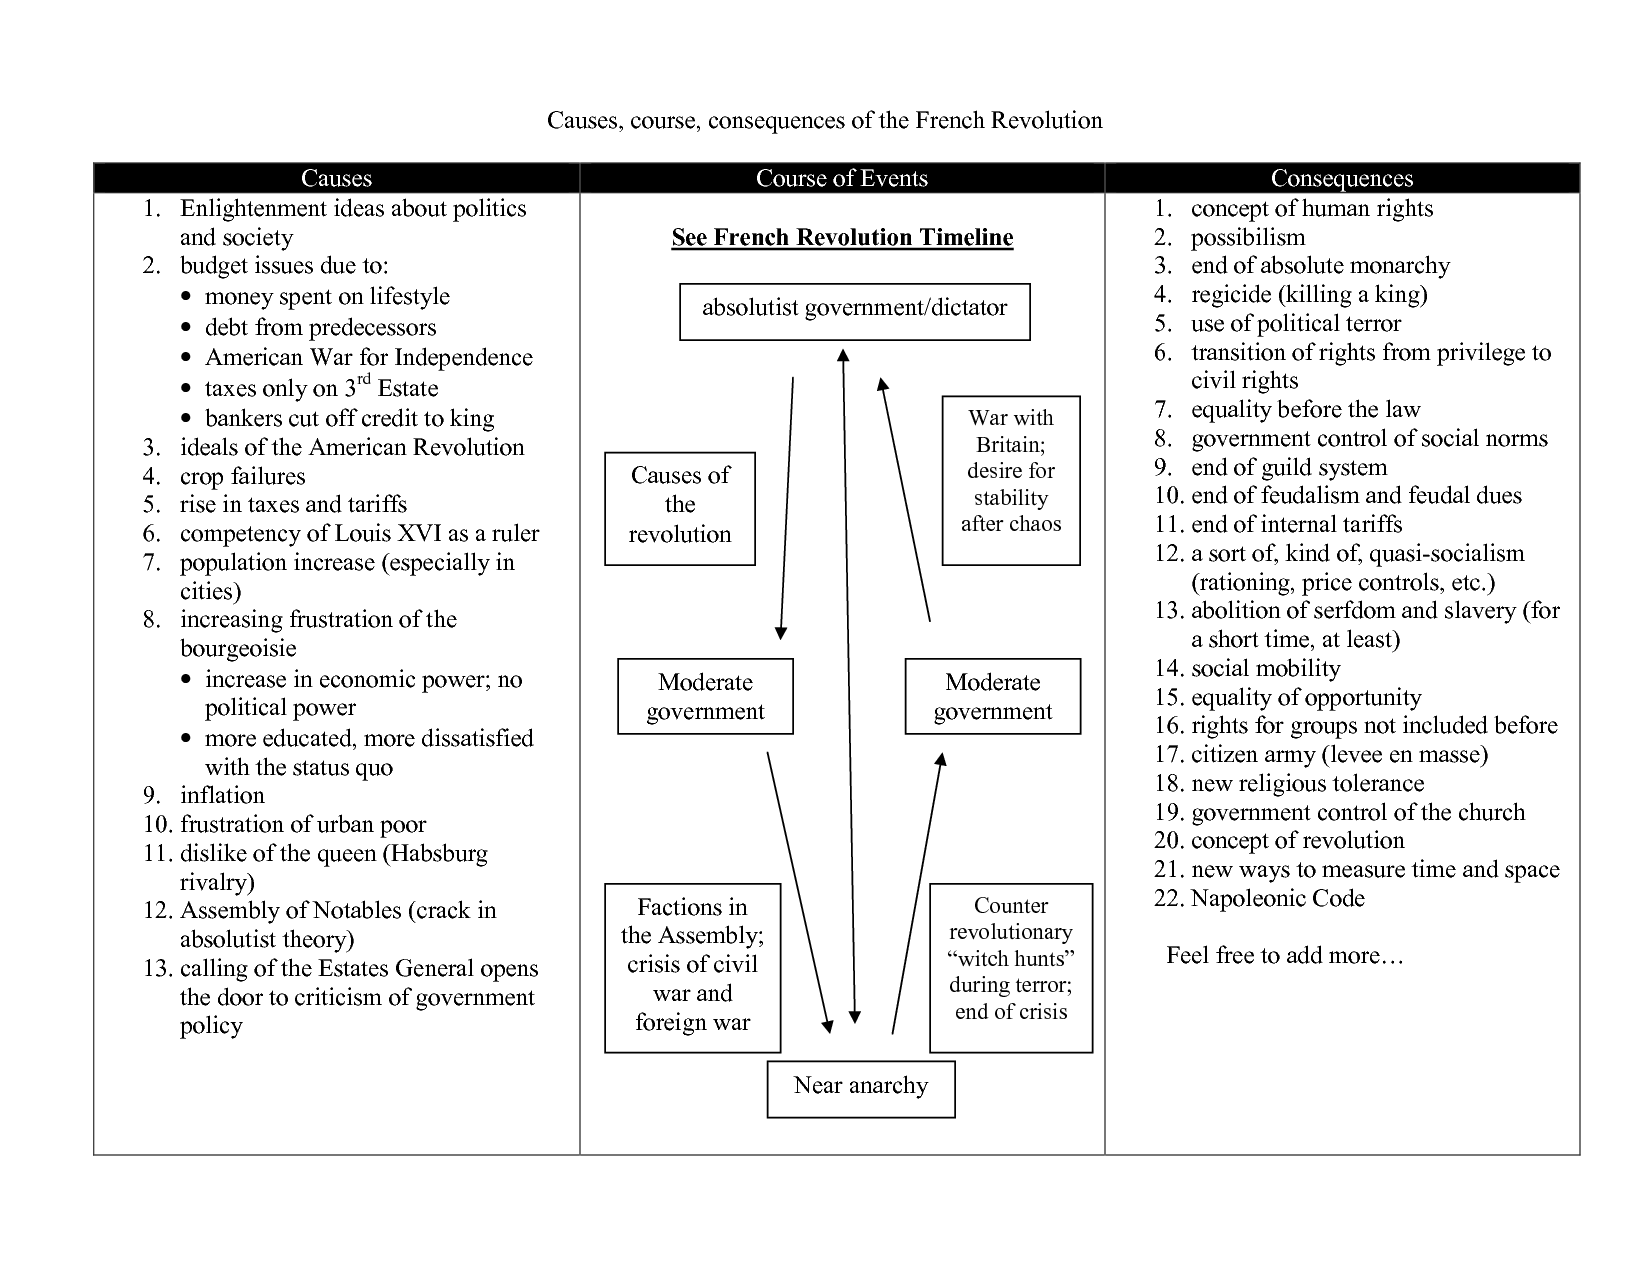 consequences of french revolution essay 3 economic cause:  the economic condition of france formed another cause for the outbreak of the french revolution the economic condition of france became poor due to the foreign wars of louis xiv, the seven years war of louis xv and other expensive wars.